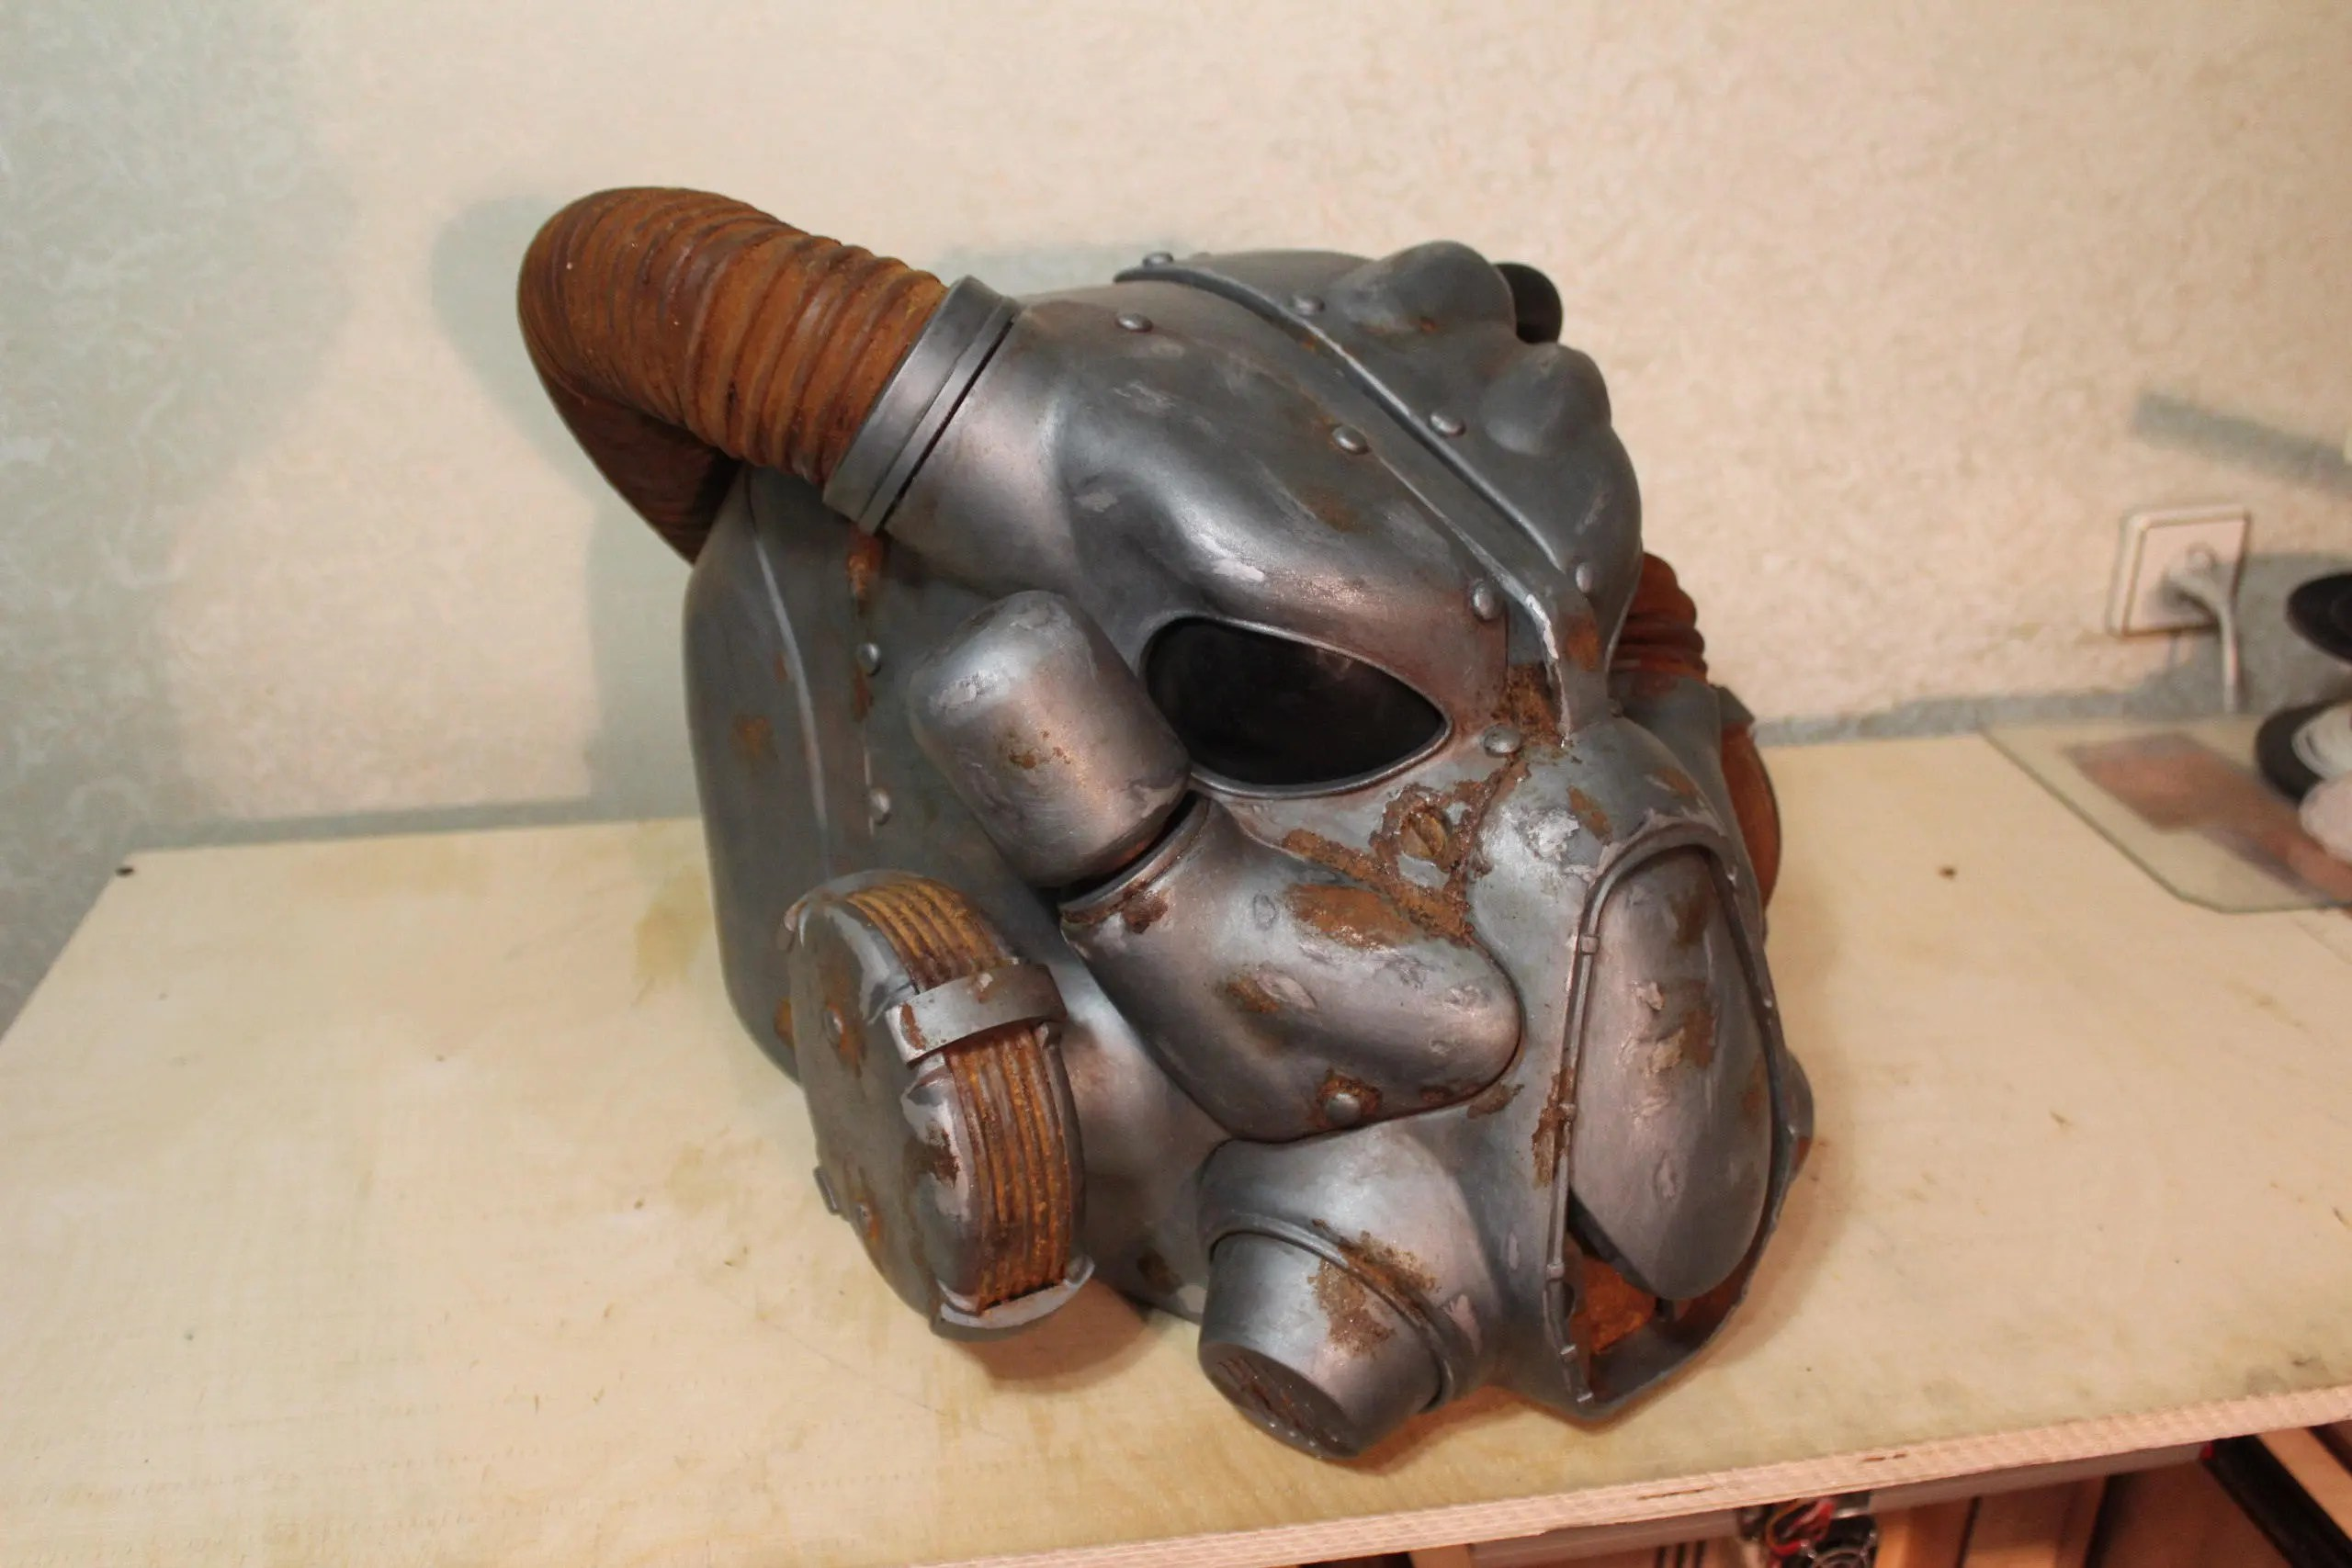 Helmet X 01 Power Armor Fallout 4 Fallout Game Cosplay